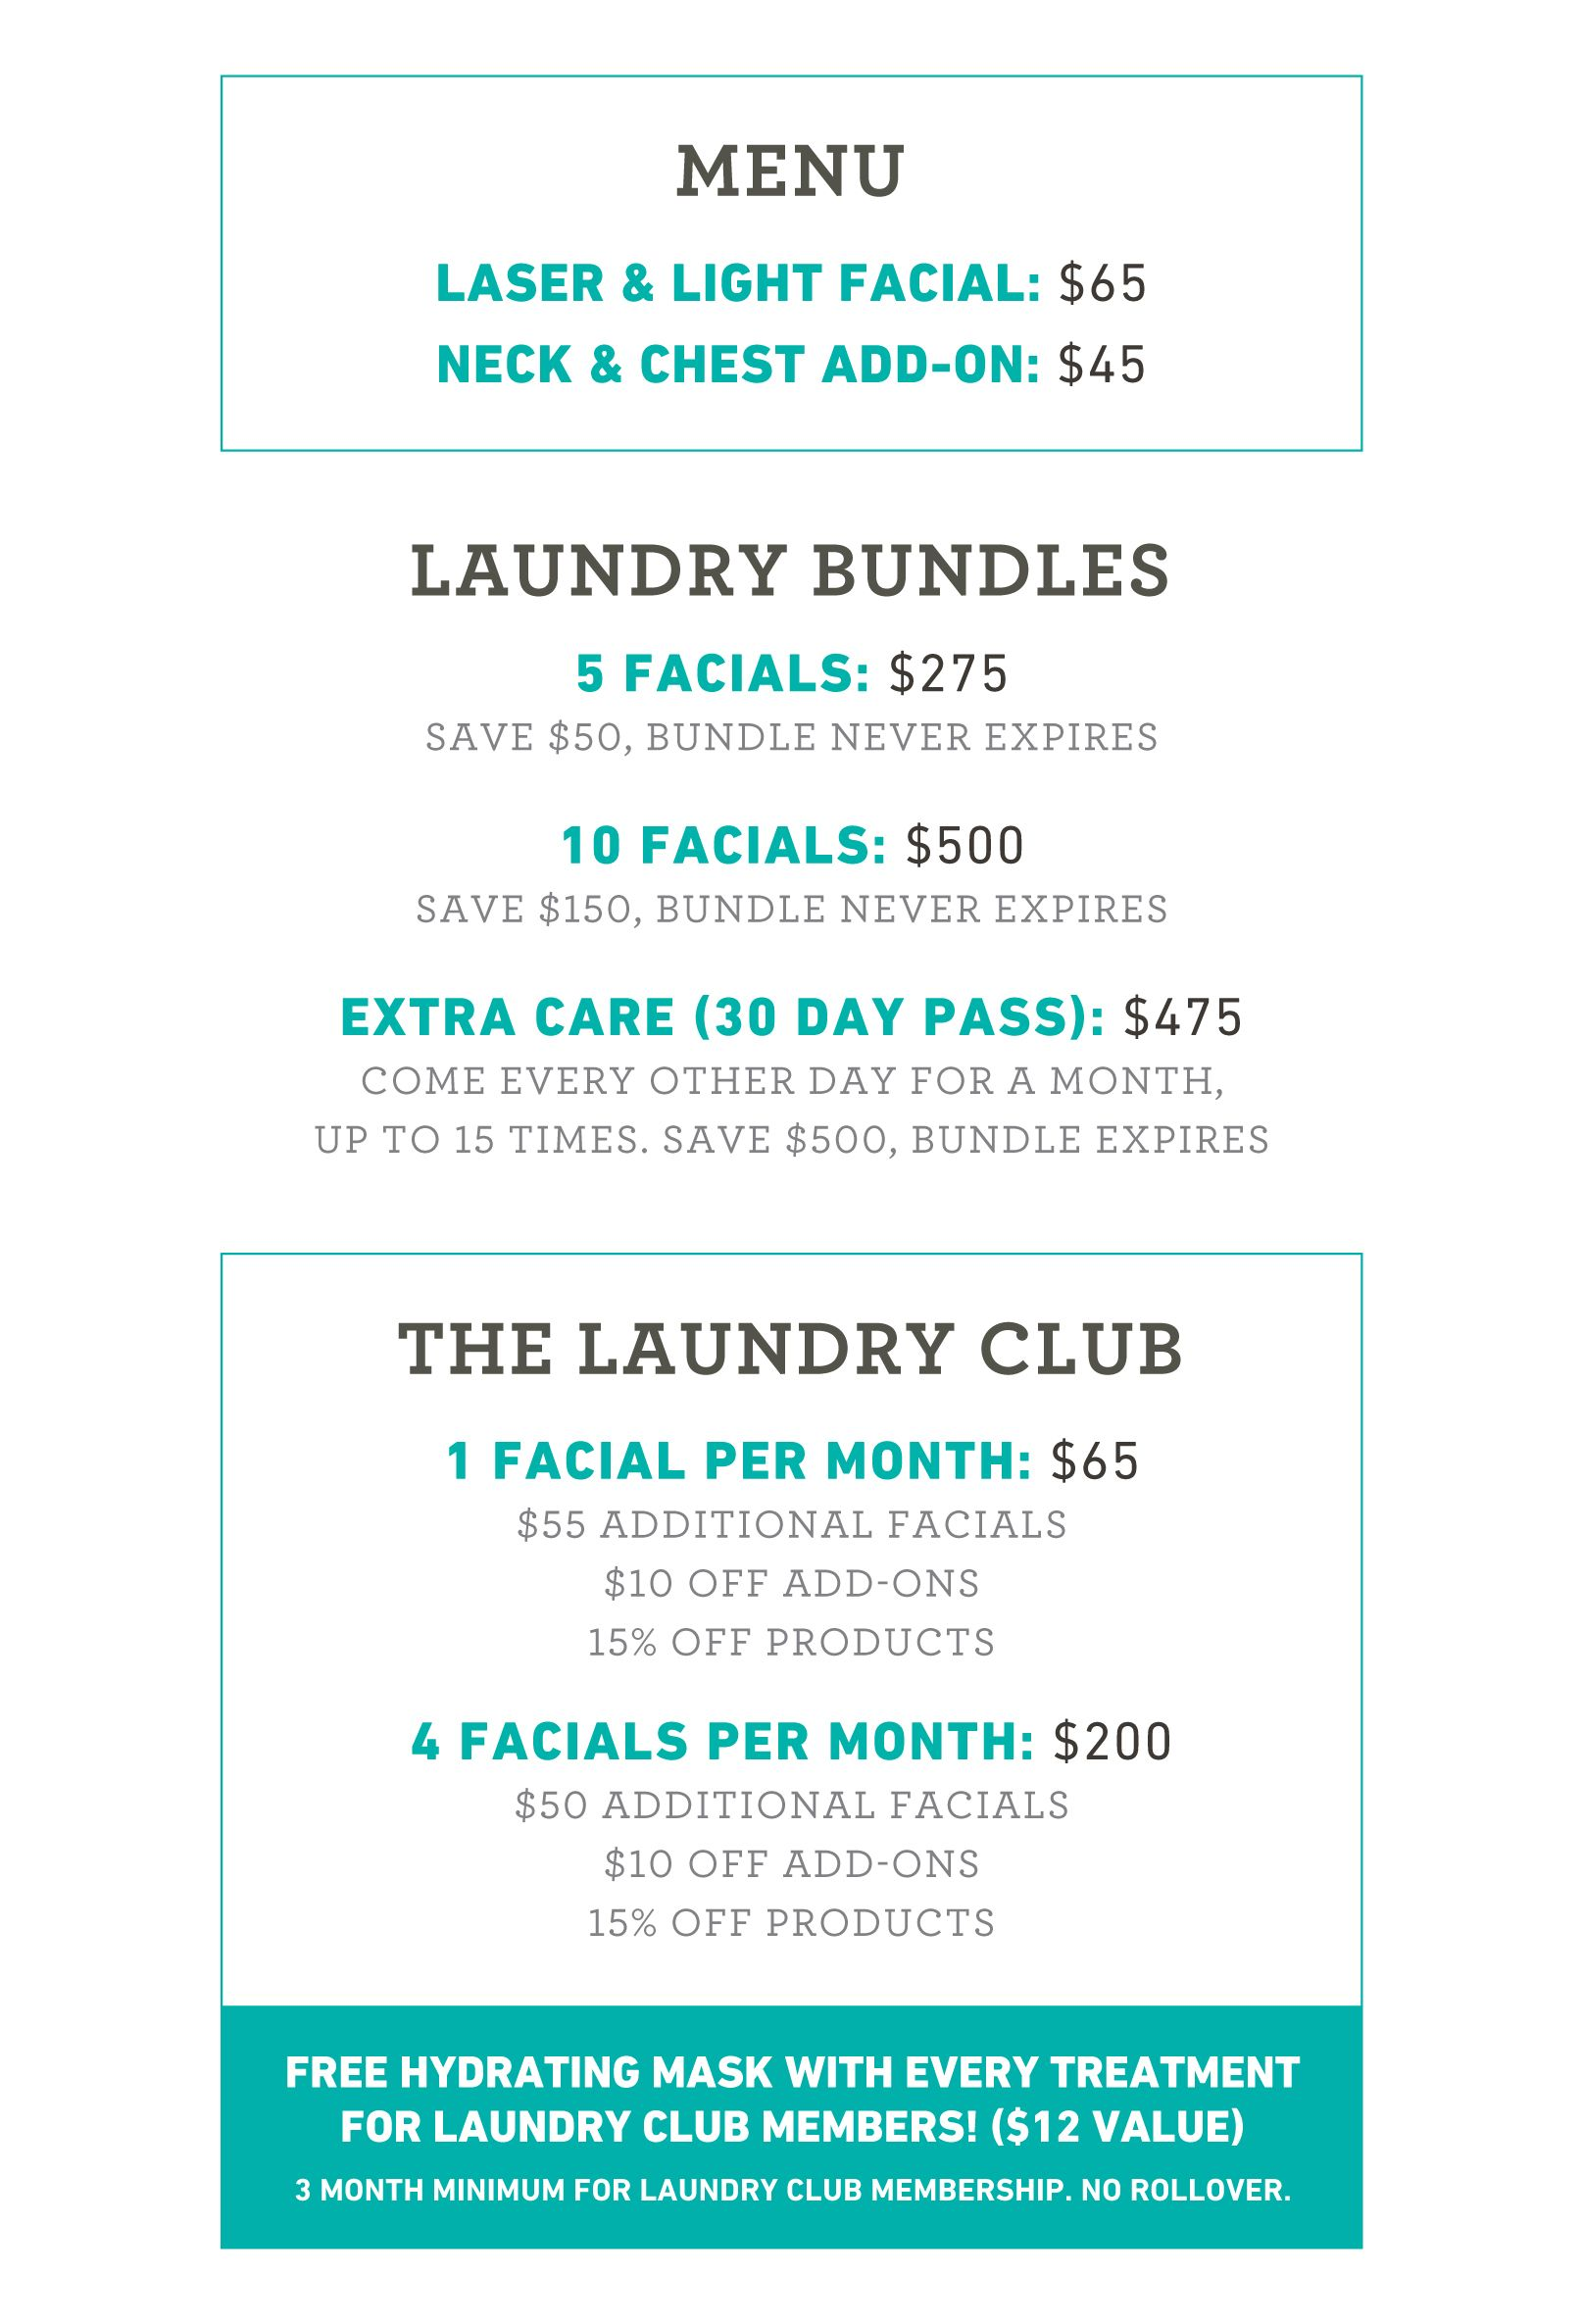 Skin Laundry Facial Prices Skin Laundry Laser Facial Skin